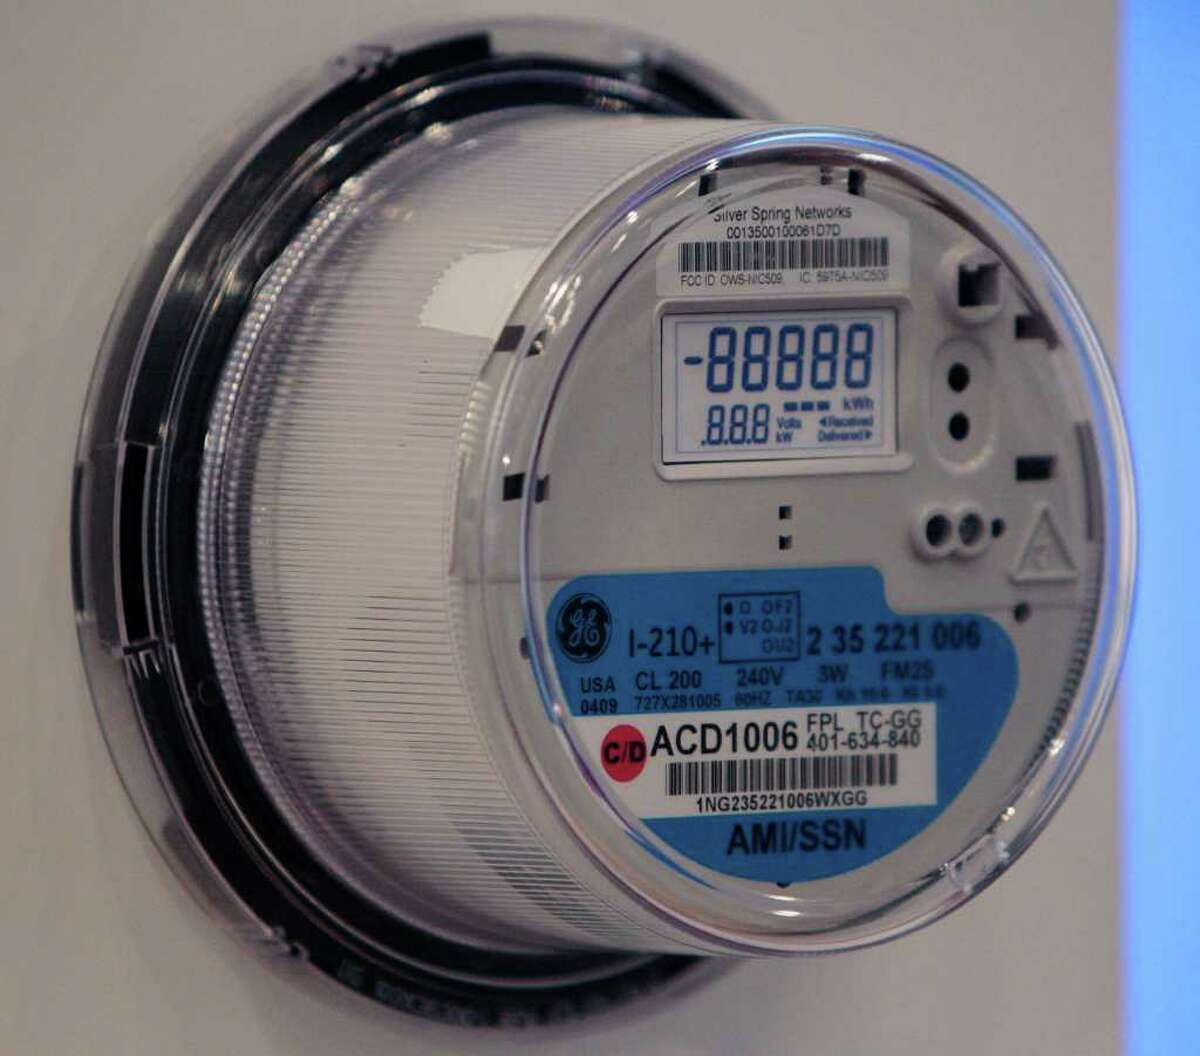 """Consert, which has moved its headquarters to San Antonio, makes energy-saving software that is used in conjunction with """"smart meters"""" like this one."""